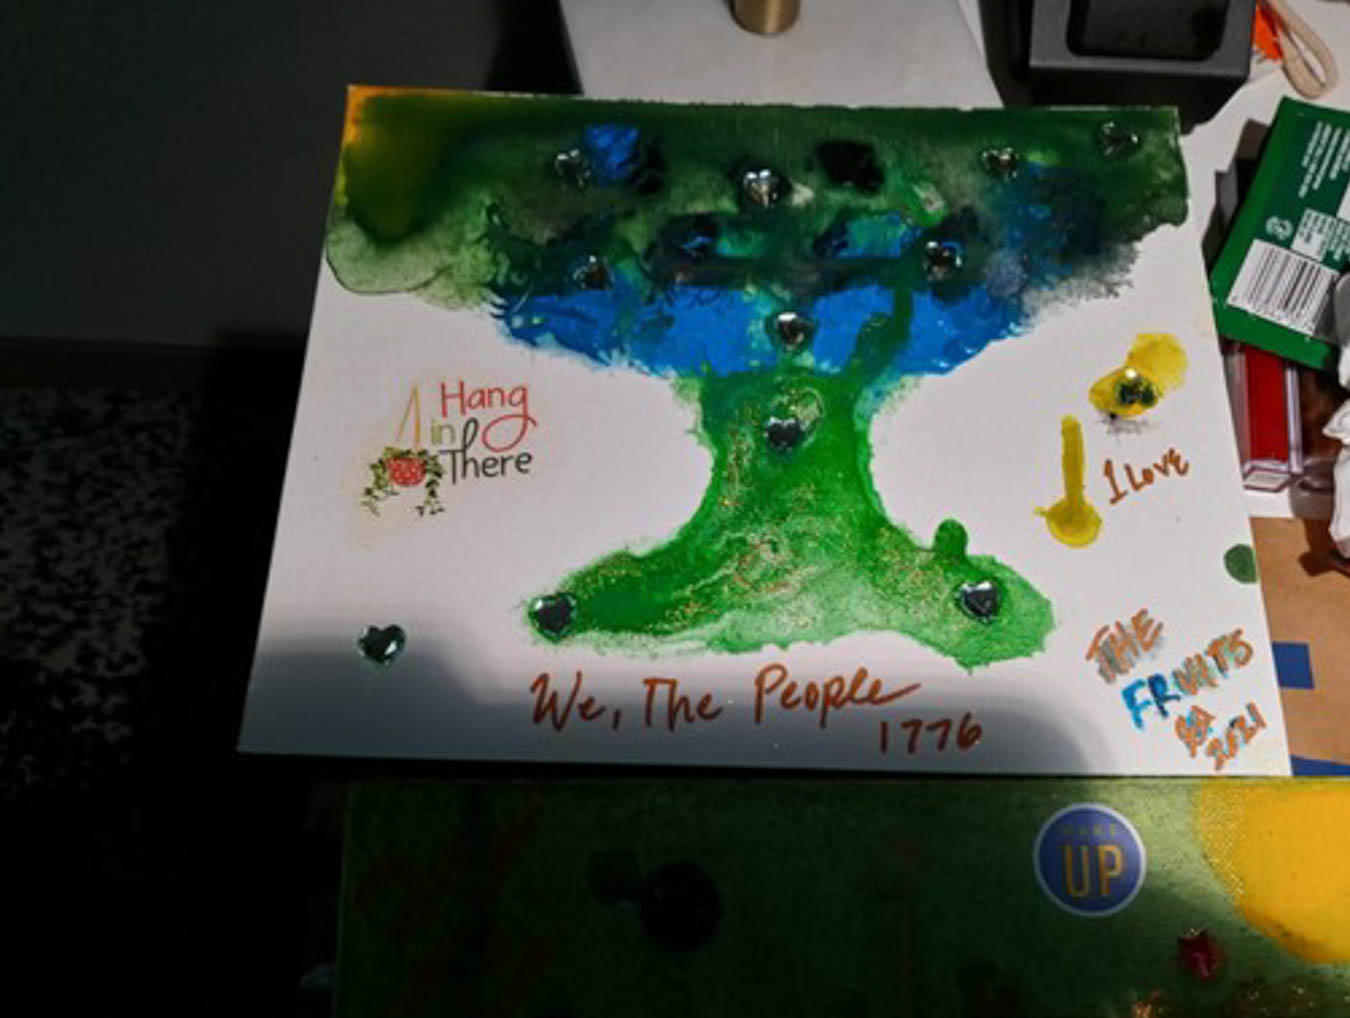 Title: The Promised Land. Water-based illustration featuring green tree.